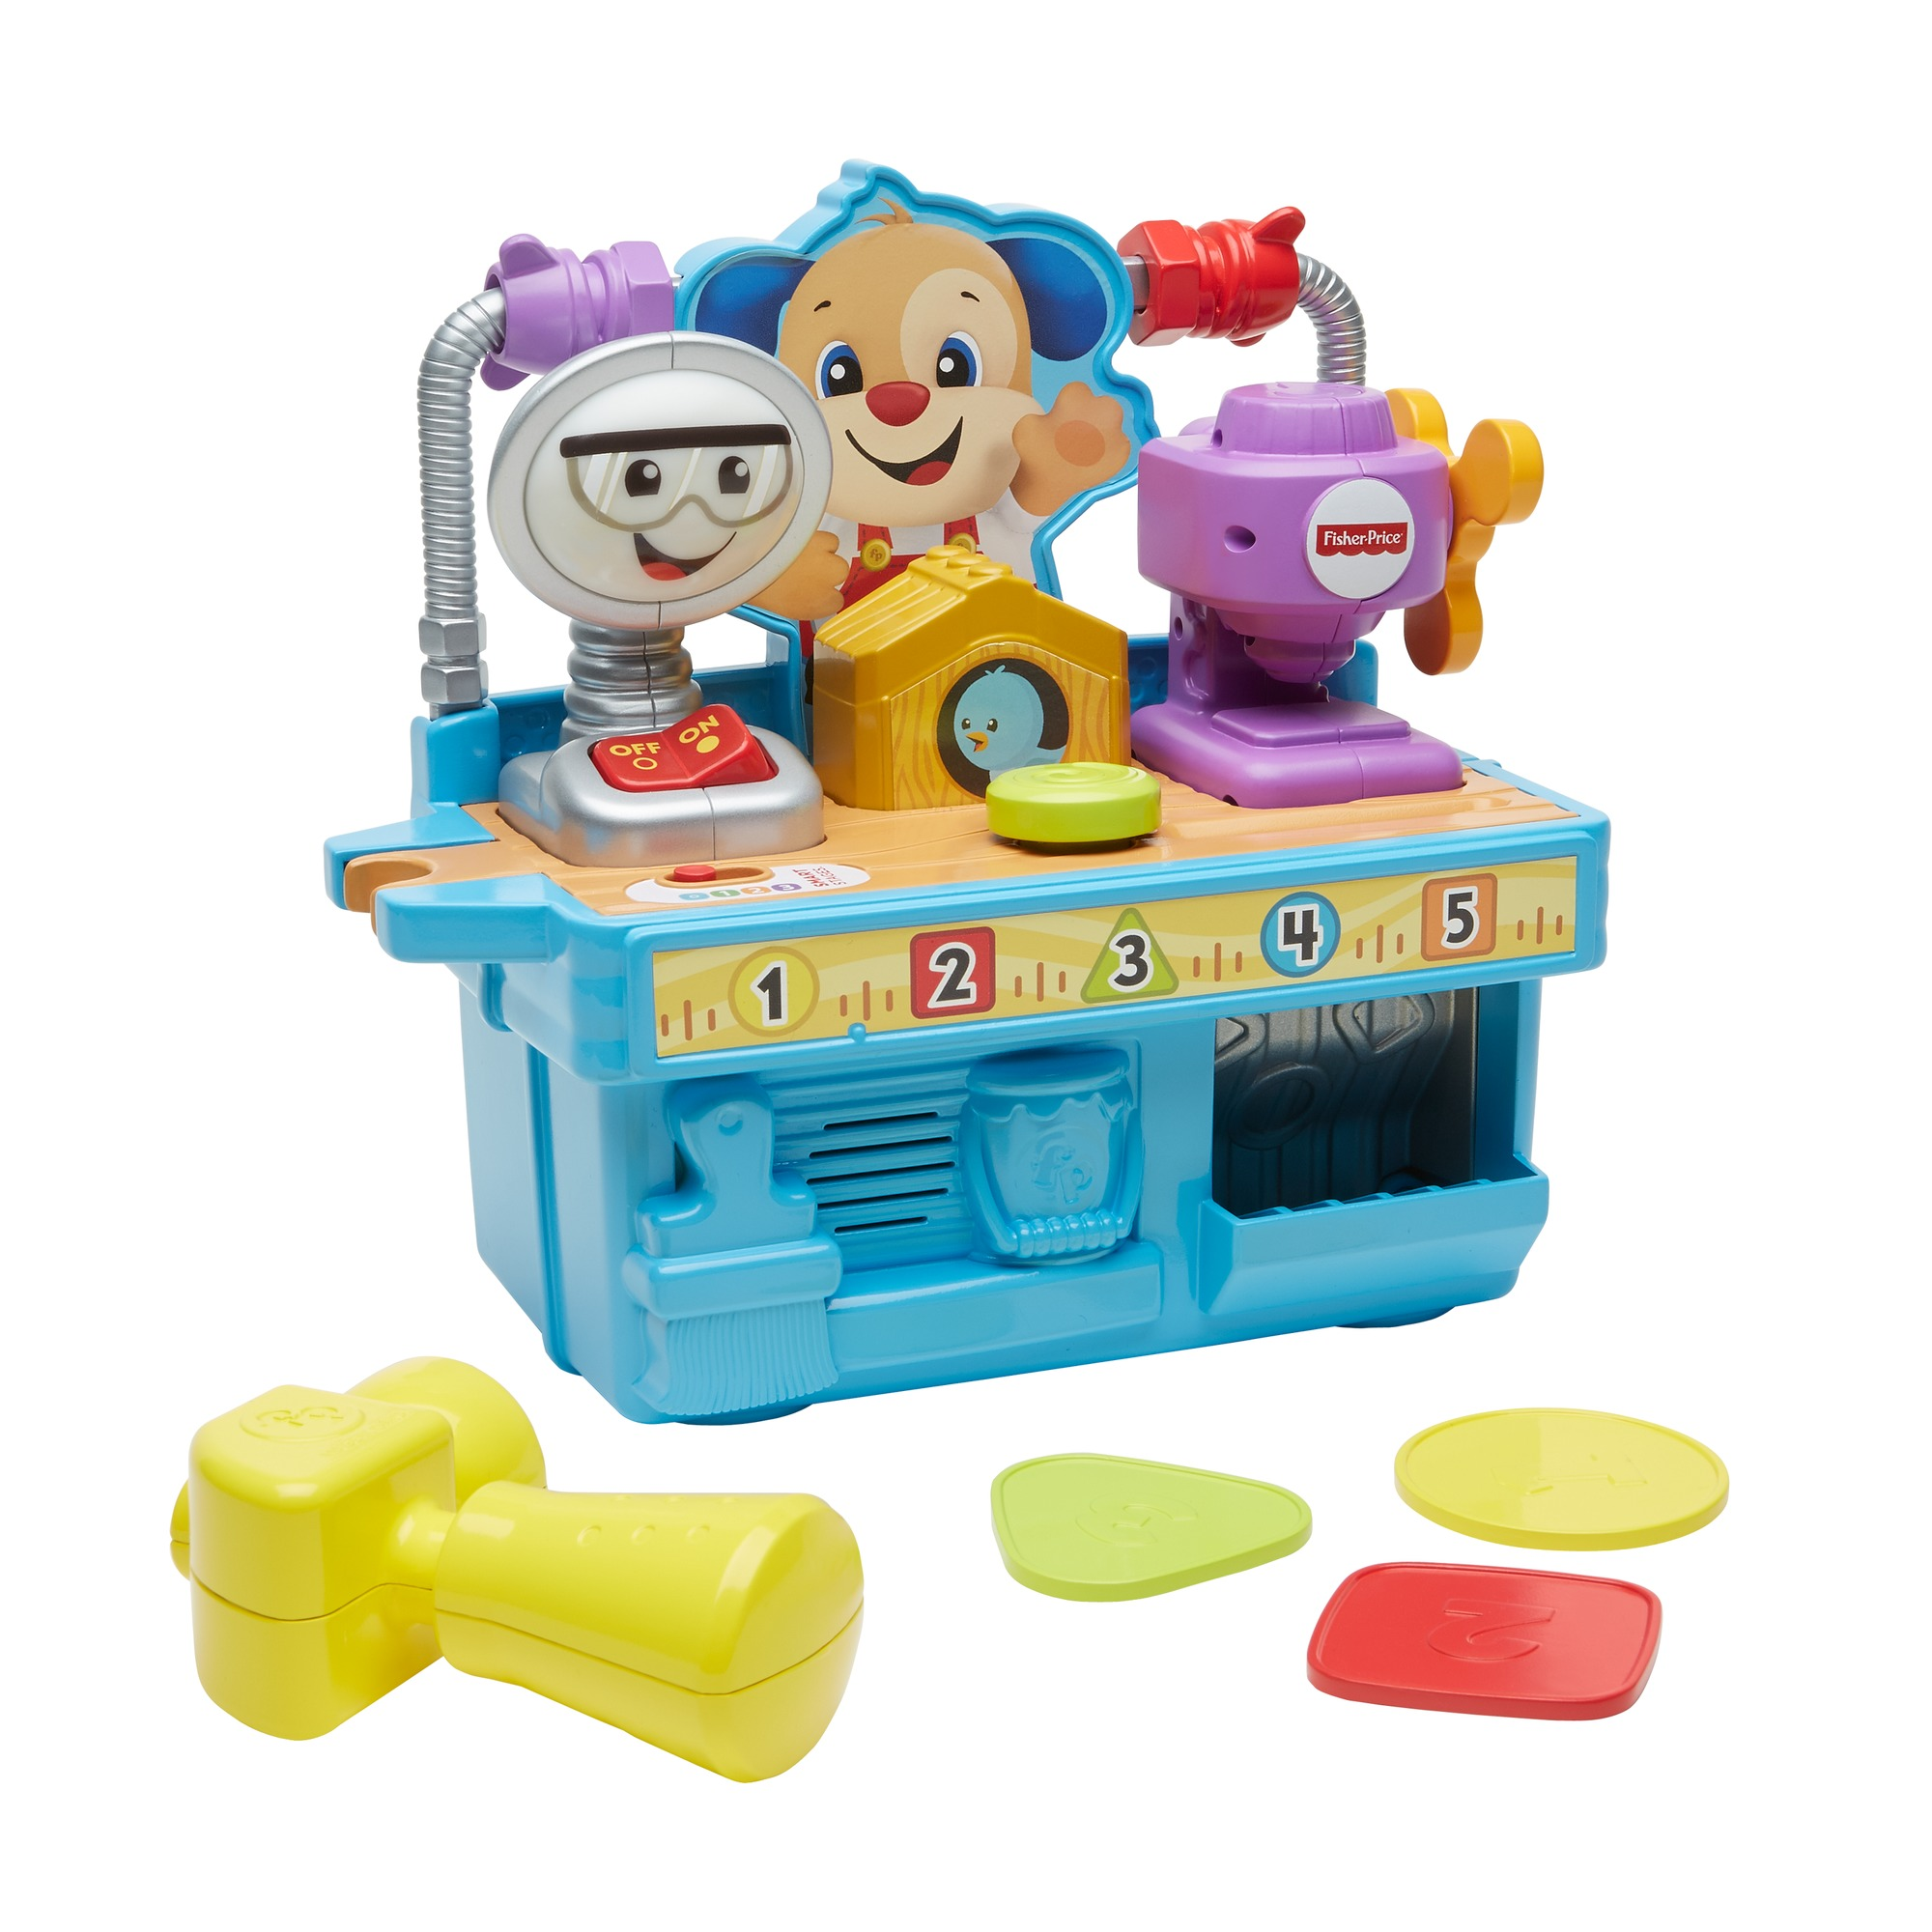 Fisher Price Laugh and Learn Role Play Tool Hammer Phone Role Play Gift Set 6-36